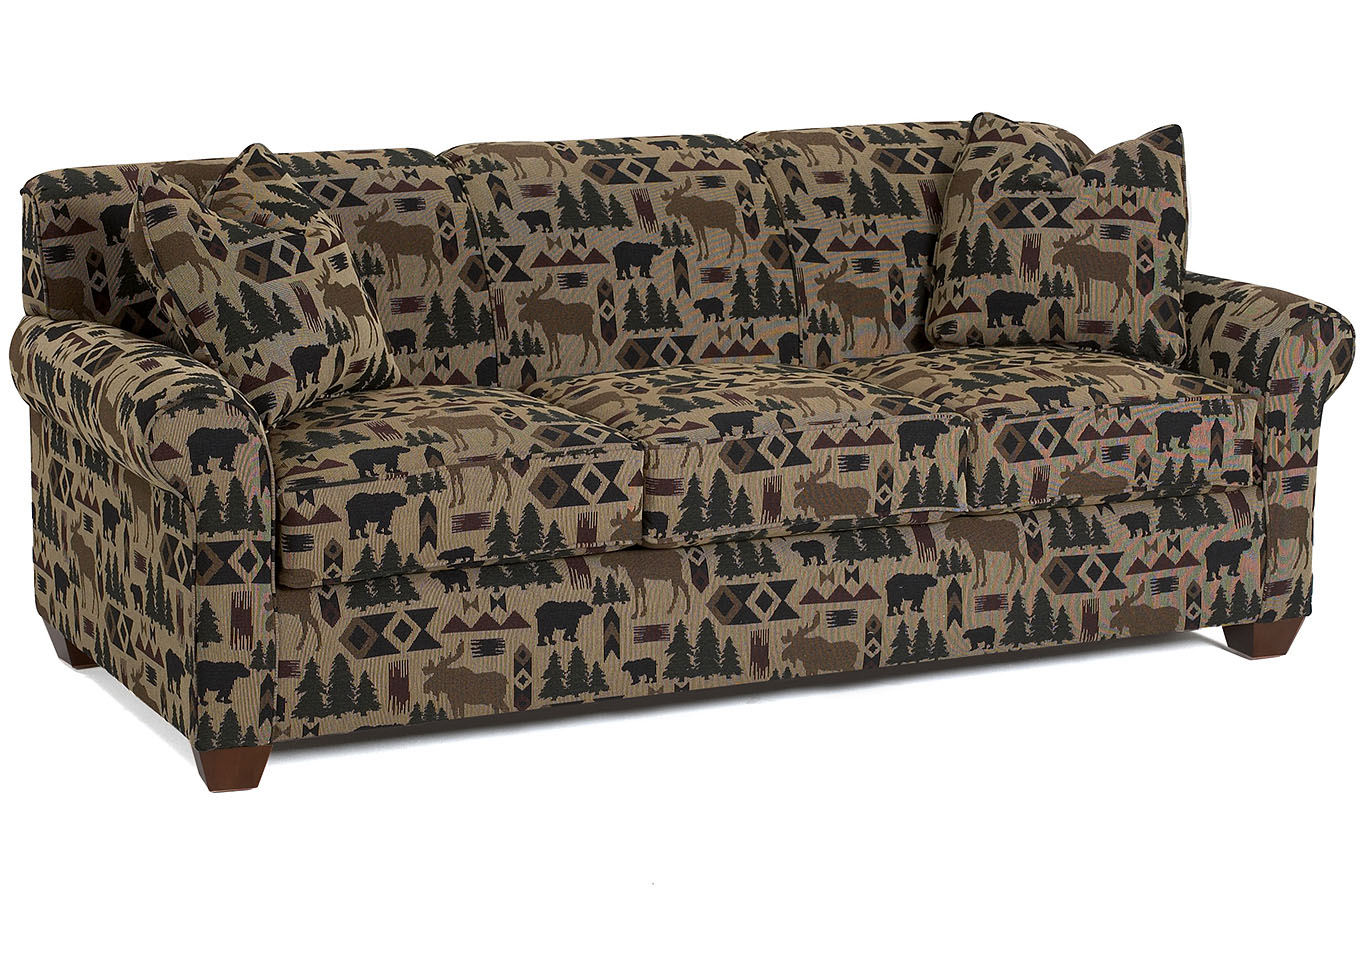 Mayhew Multi-Colored Stationary Fabric Sofa,Klaussner Home Furnishings